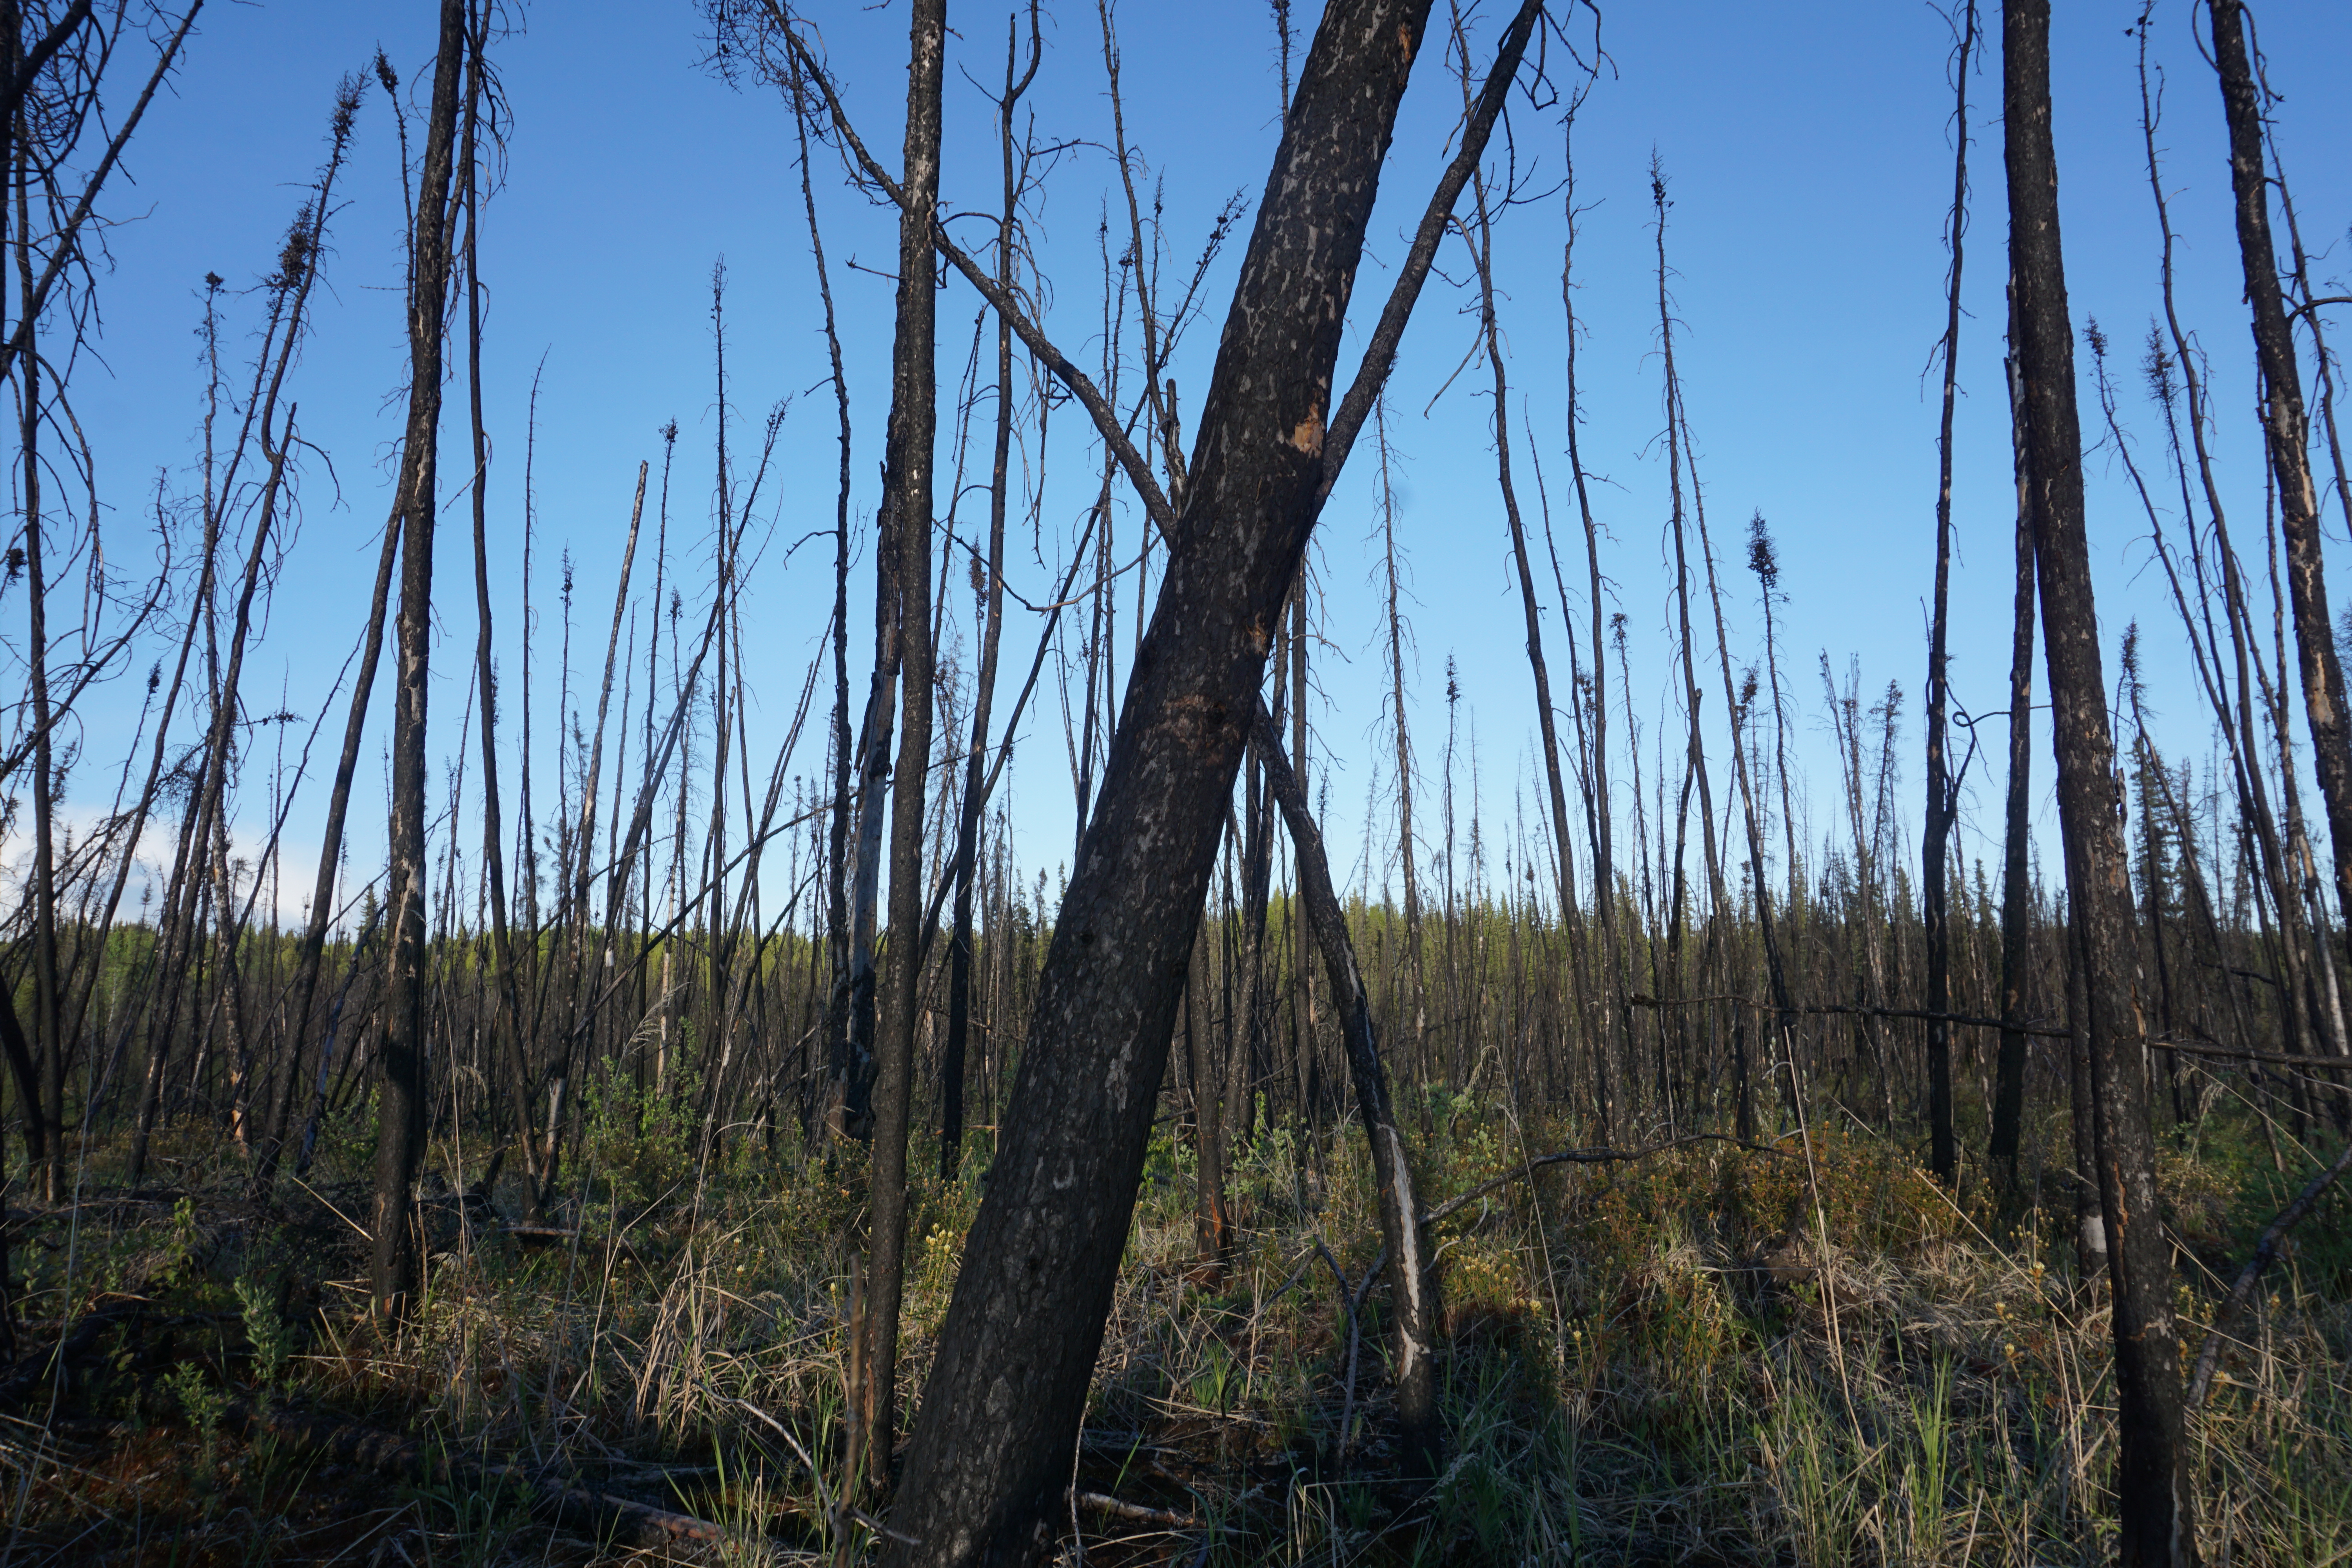 Boreal forests are losing their carbon-storing abilities as fires become more frequent - Arctic Today